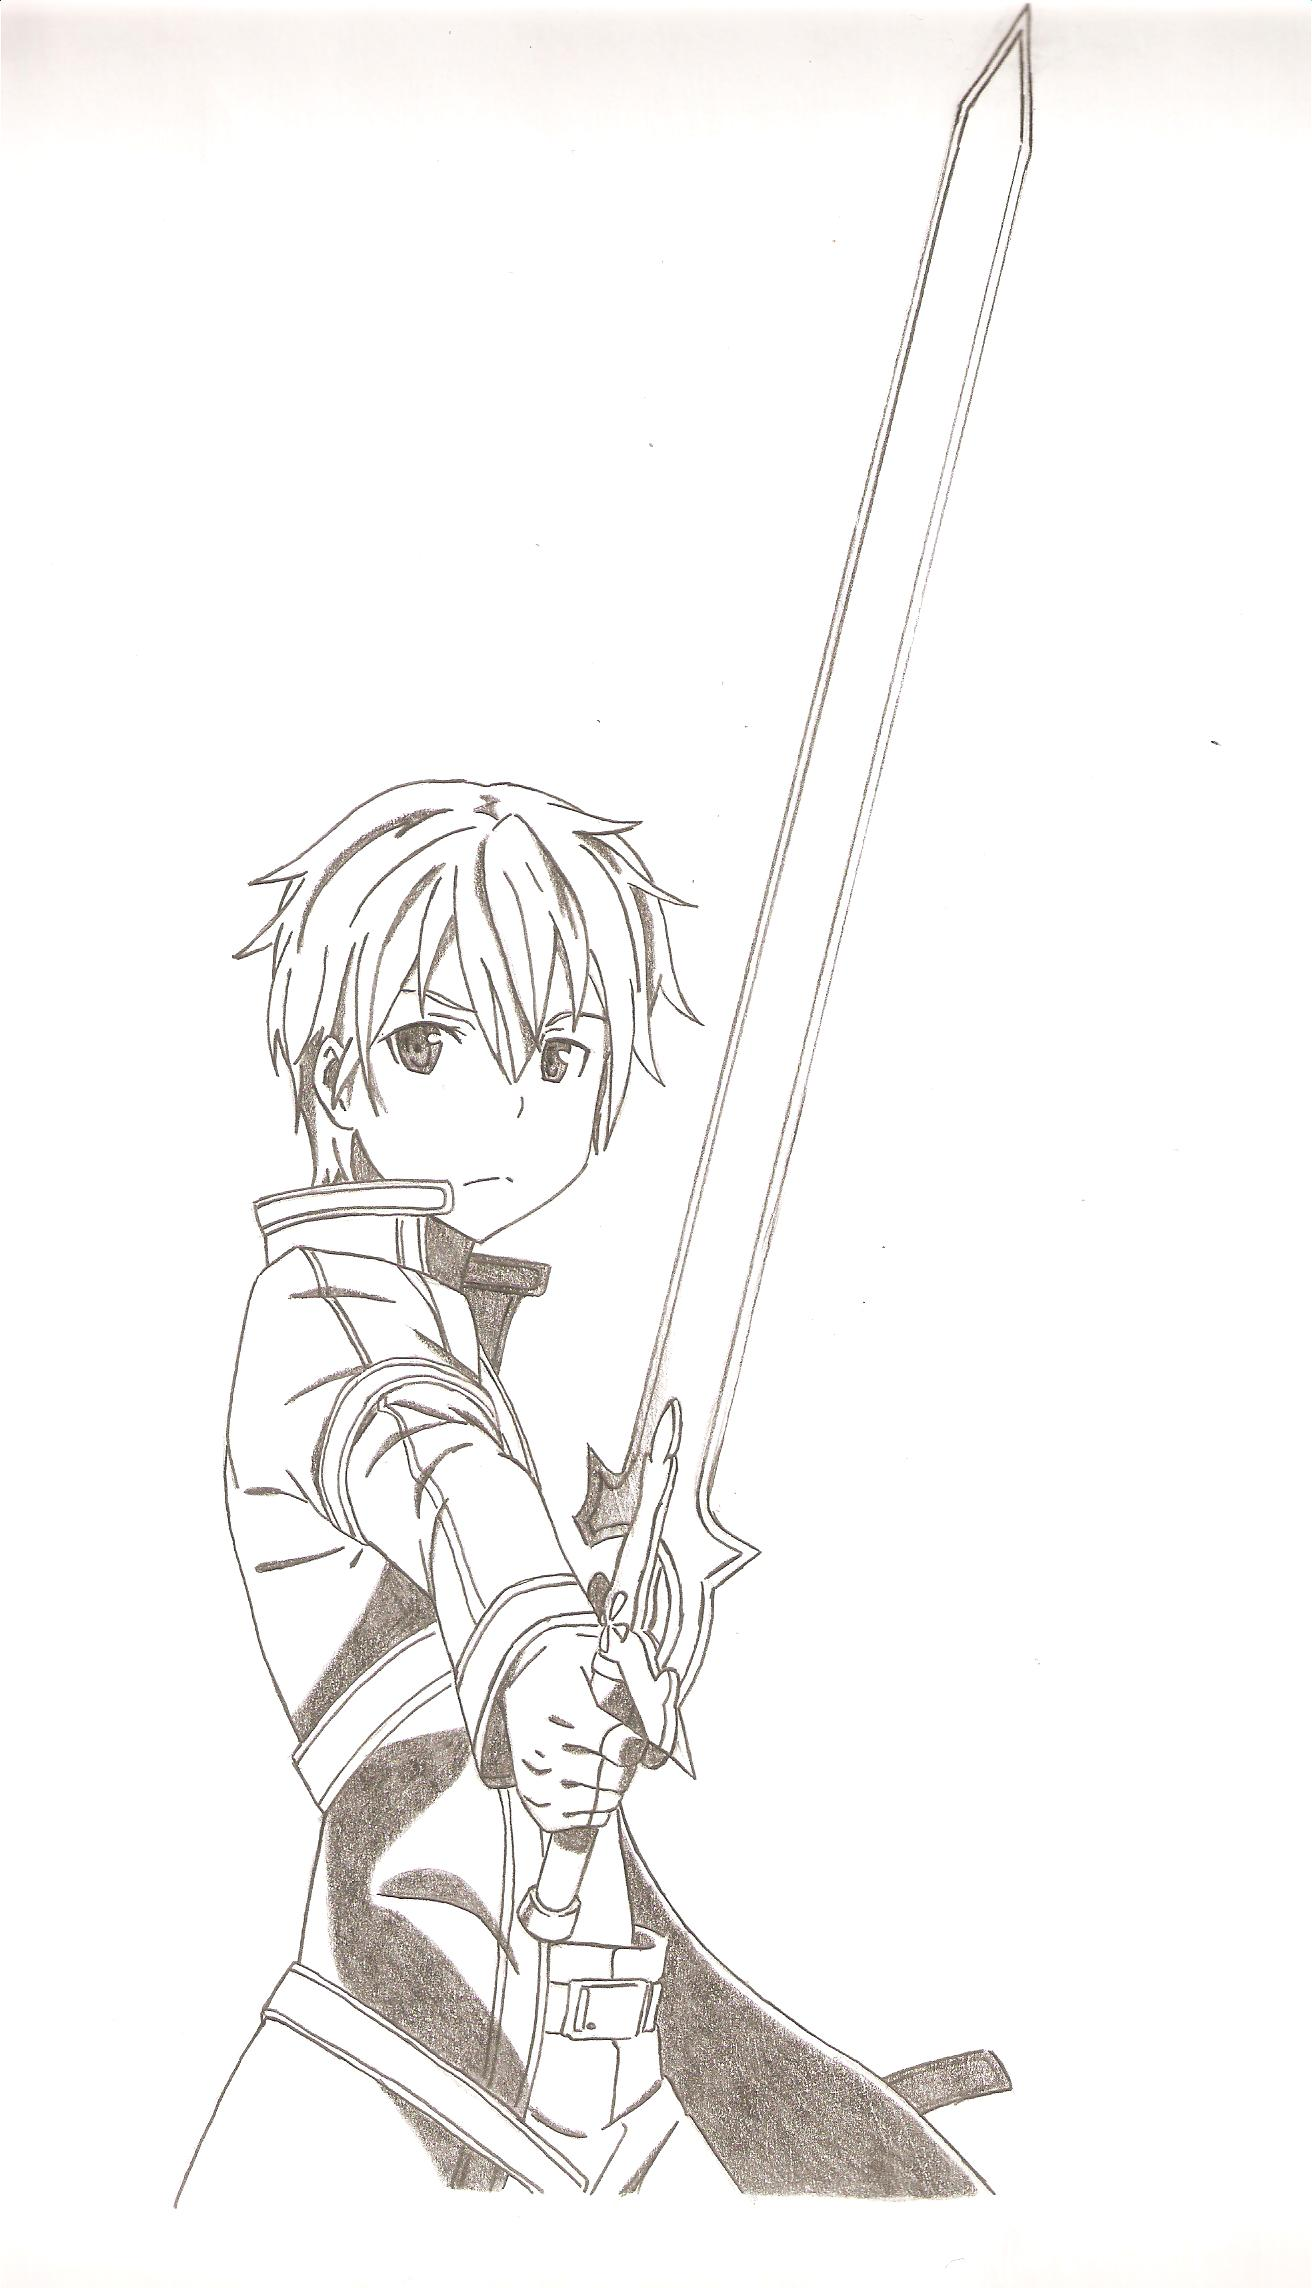 Sao swords drawing images galleries for Draw online